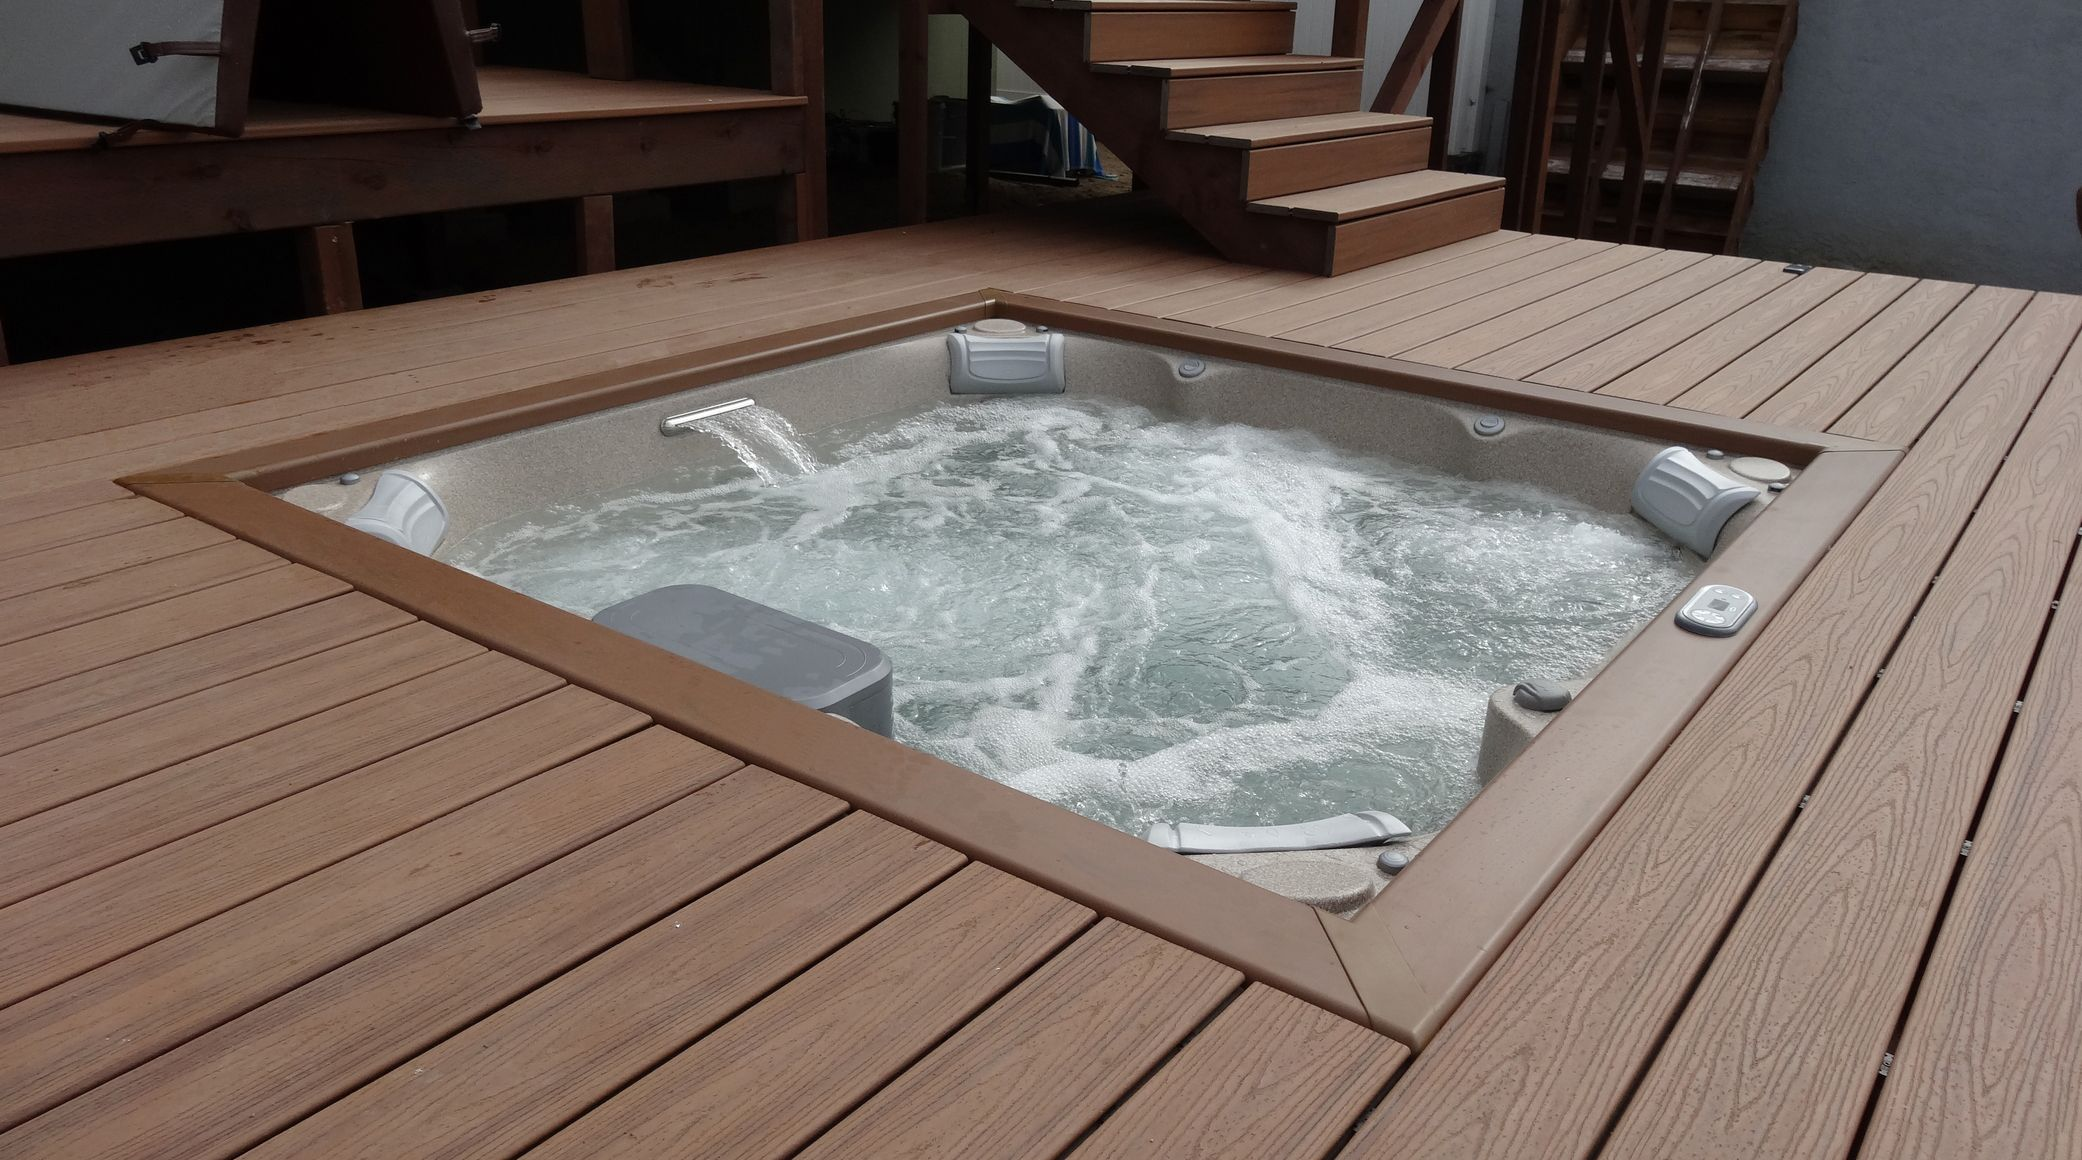 spa jacuzzi jlx encastr dans terrasse en bois jacuzzi terrasse bois jardin pinterest. Black Bedroom Furniture Sets. Home Design Ideas